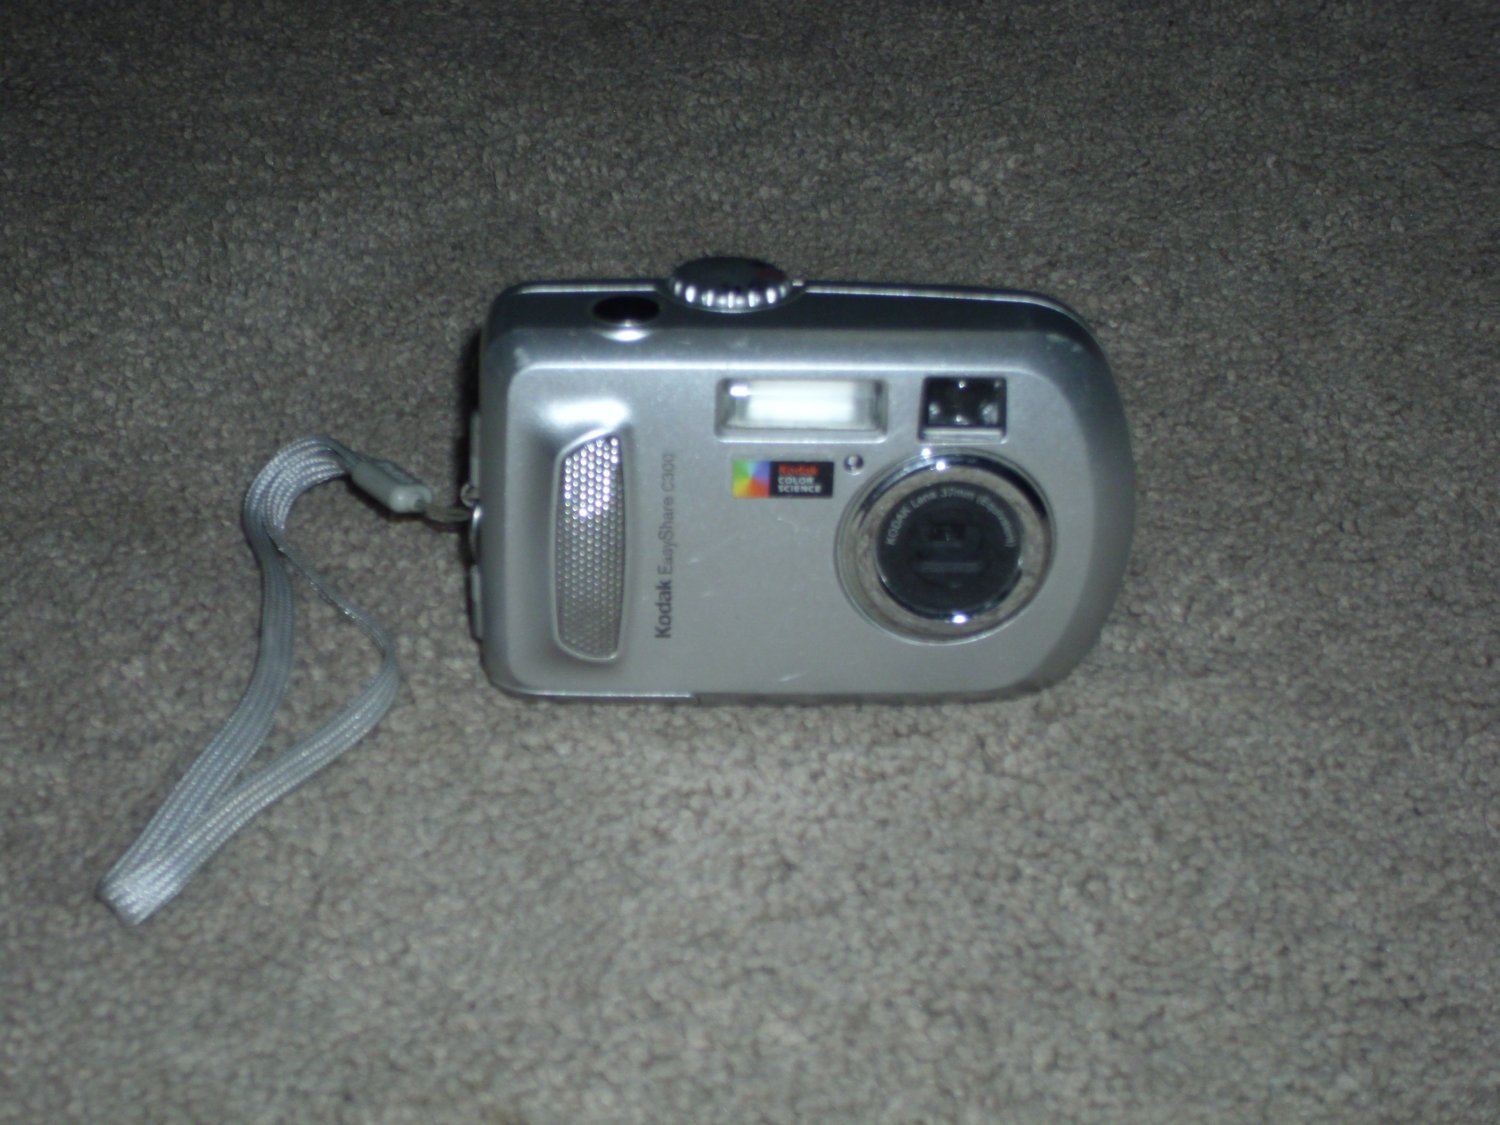 Kodak EasyShare C300 Digital Camera